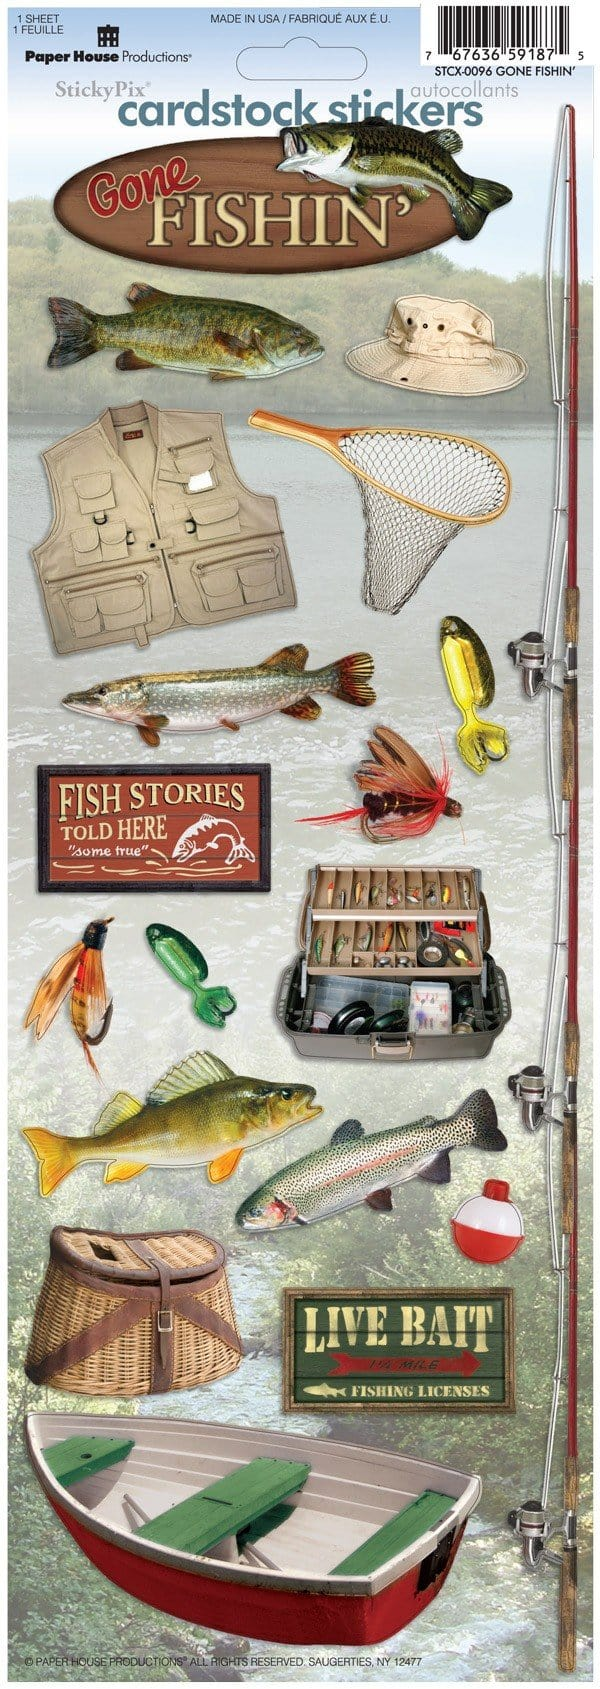 Gone Fishin' Cardstock Stickers